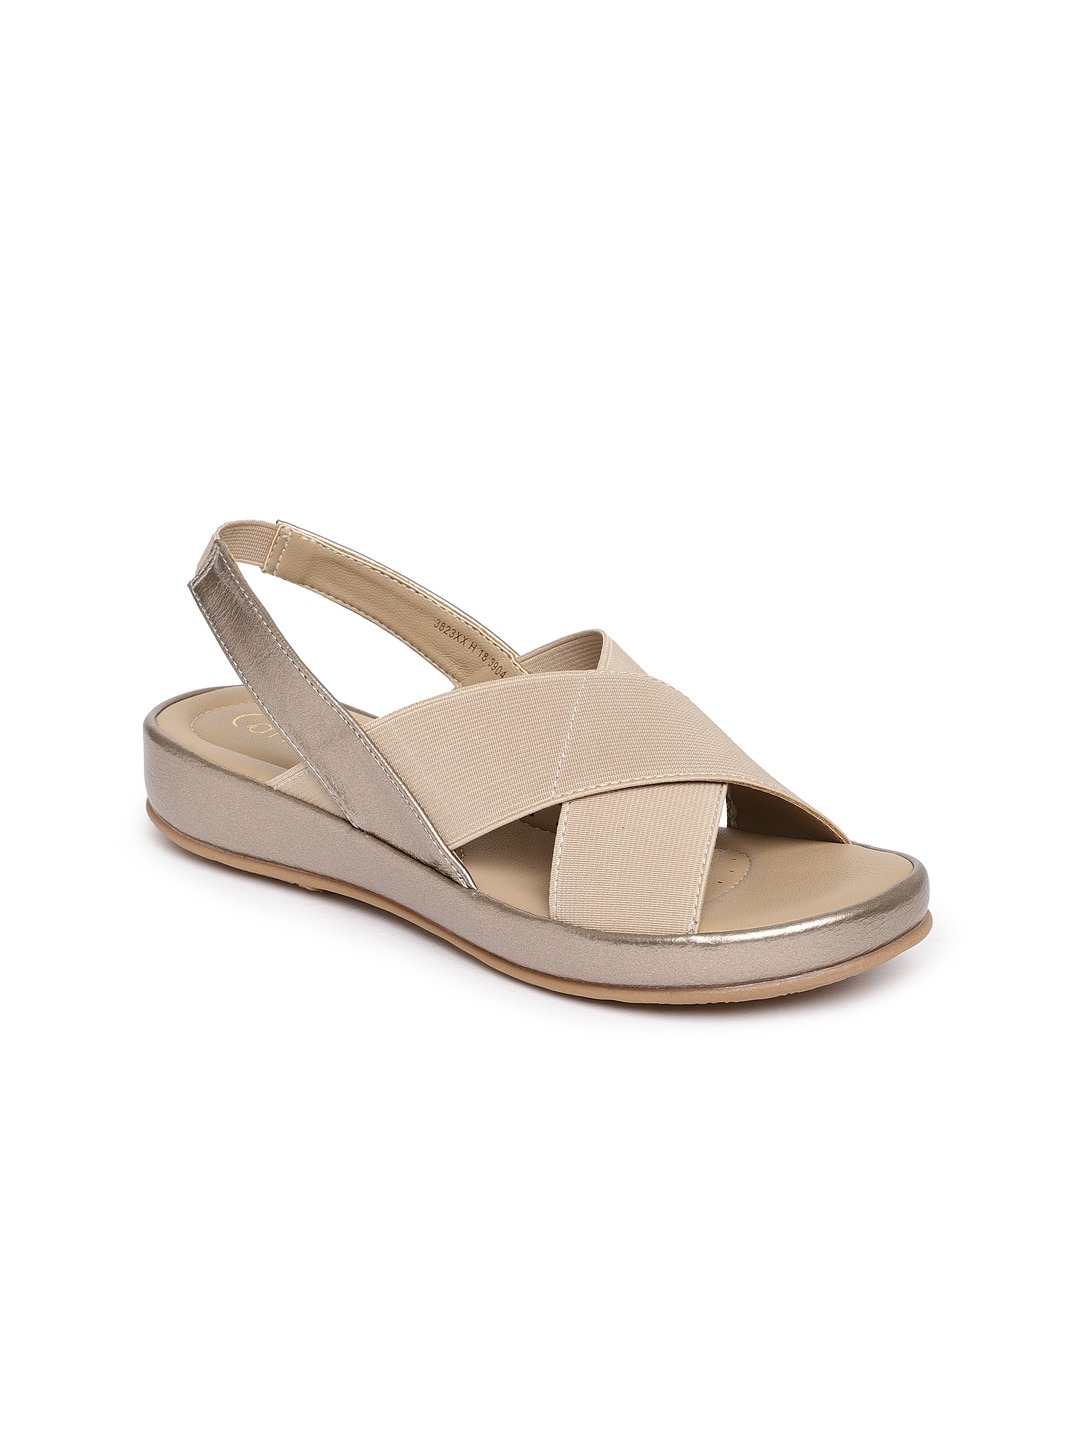 Beige Solid Synthetic Open Toe Flats